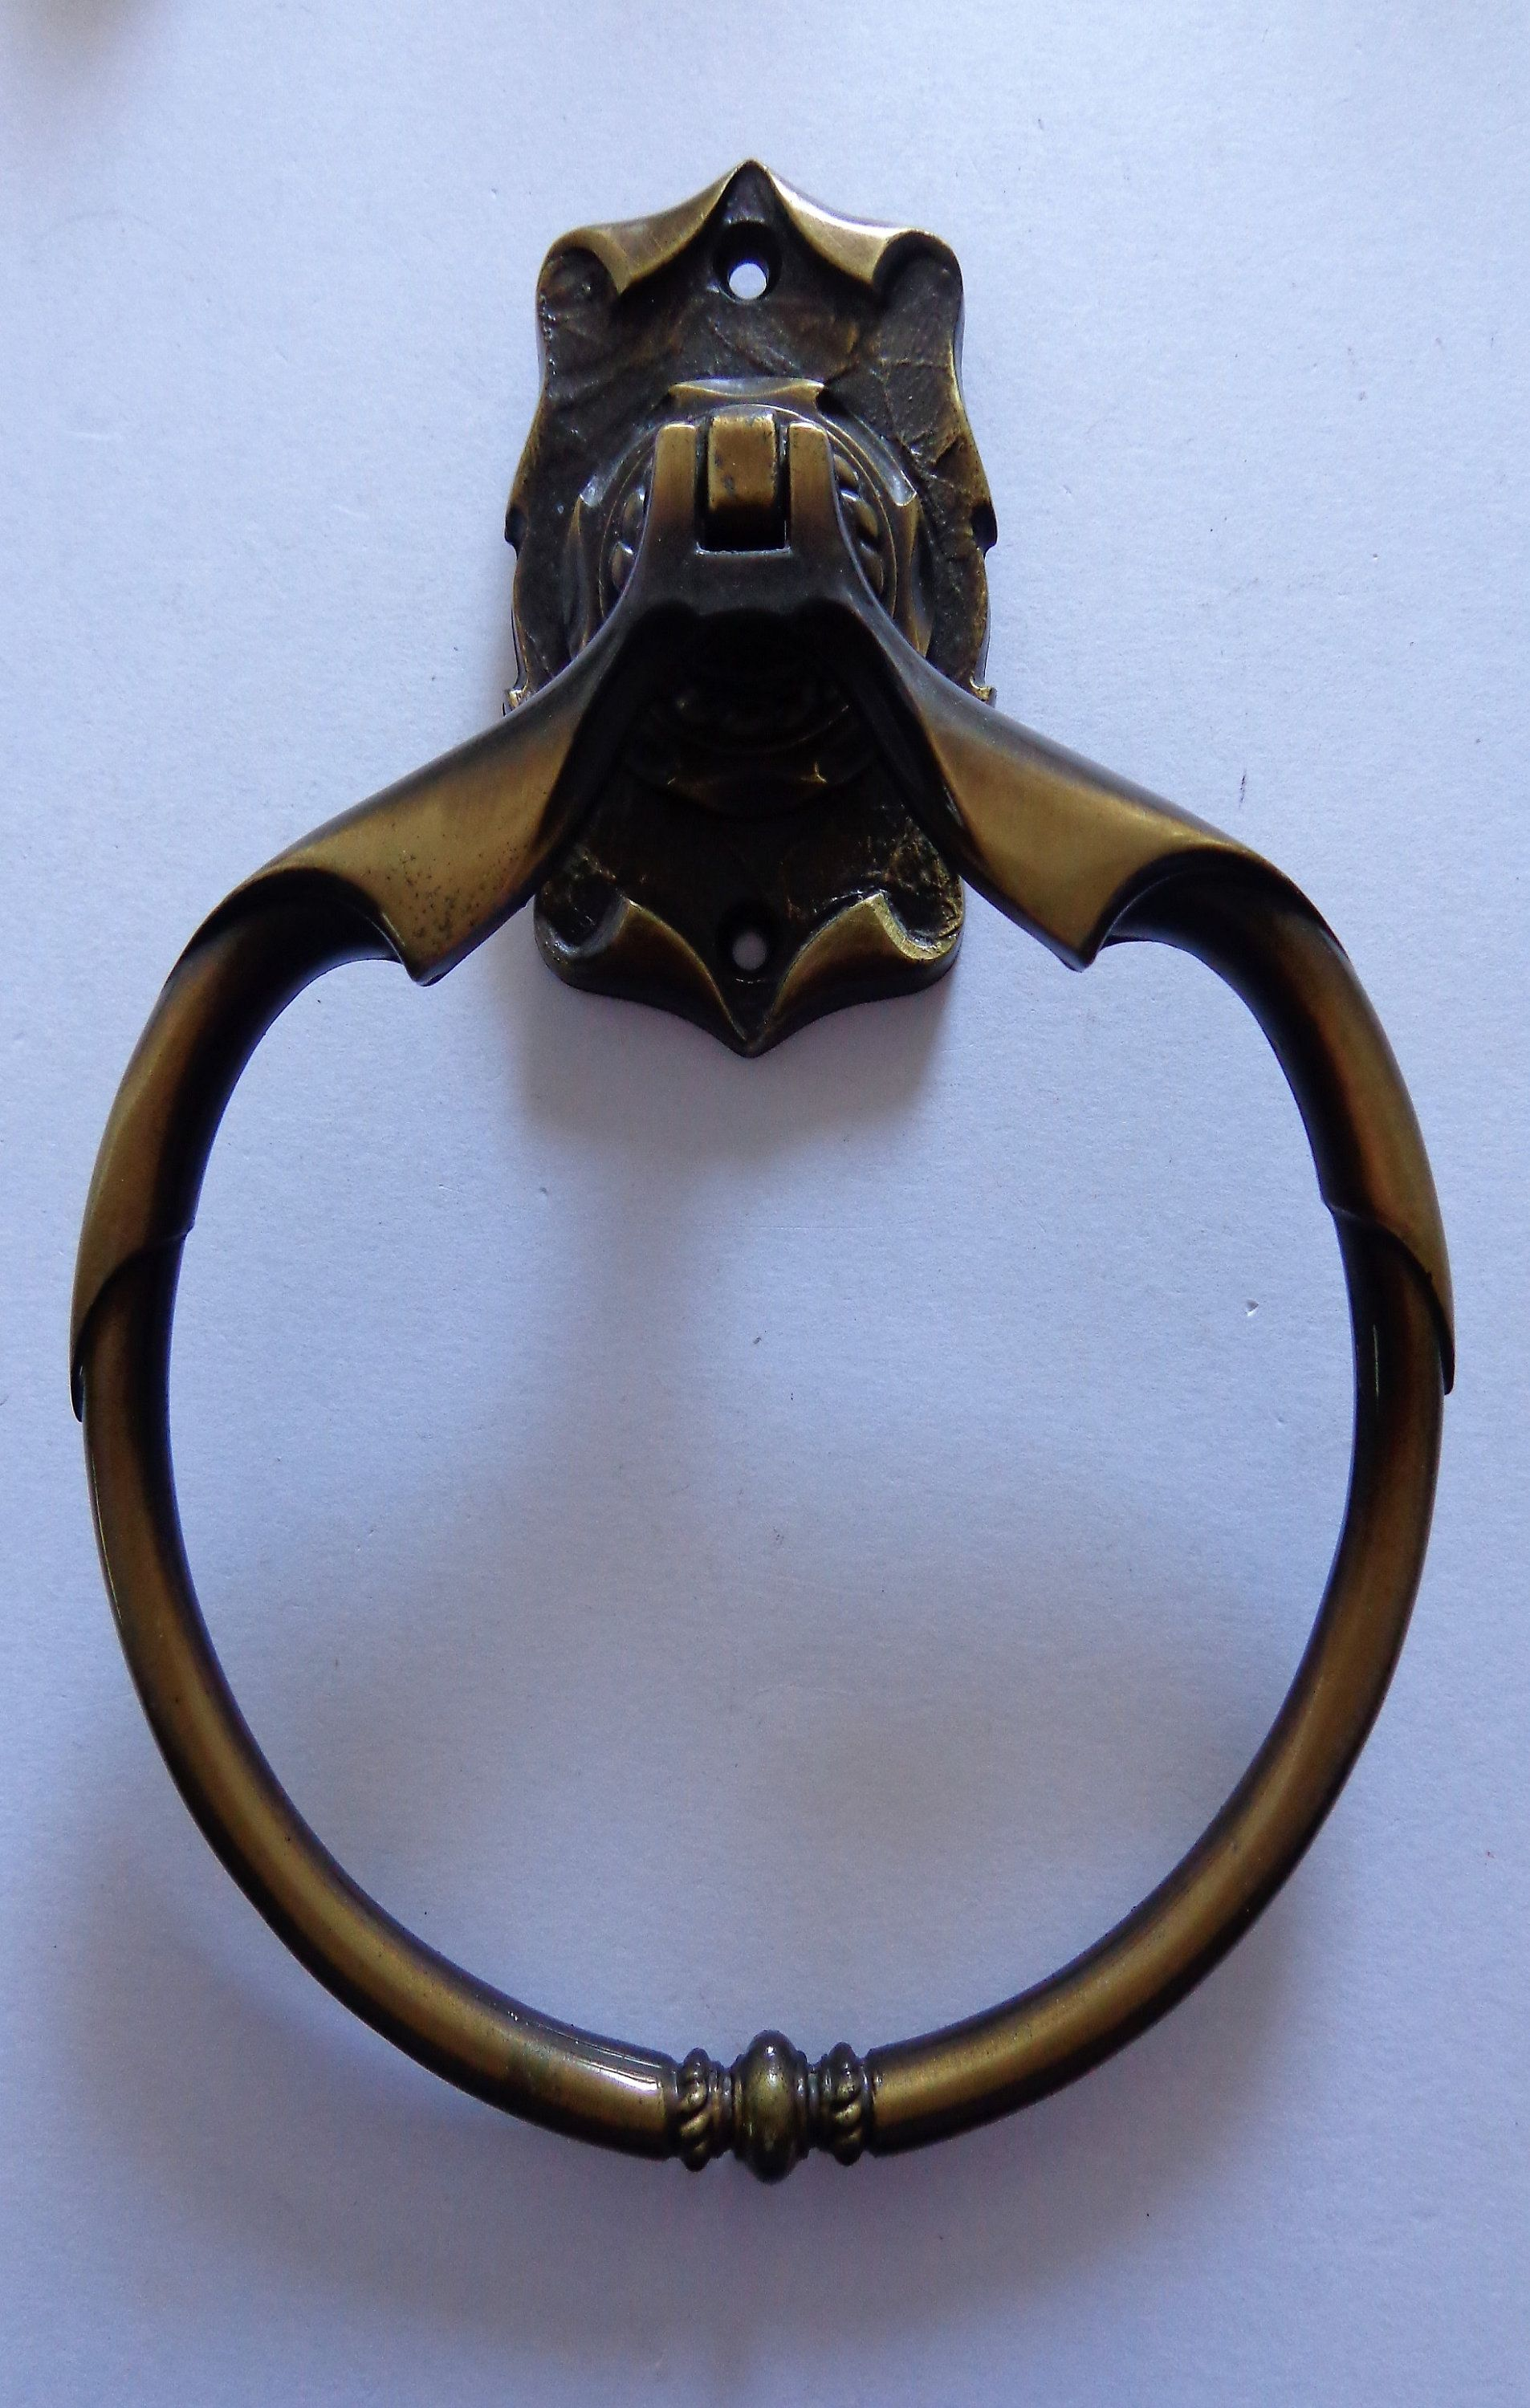 Antique Brass Towel Ring Holder Carriage House Wall Mount Etsy Towel Rings Antique Brass Ring Holder